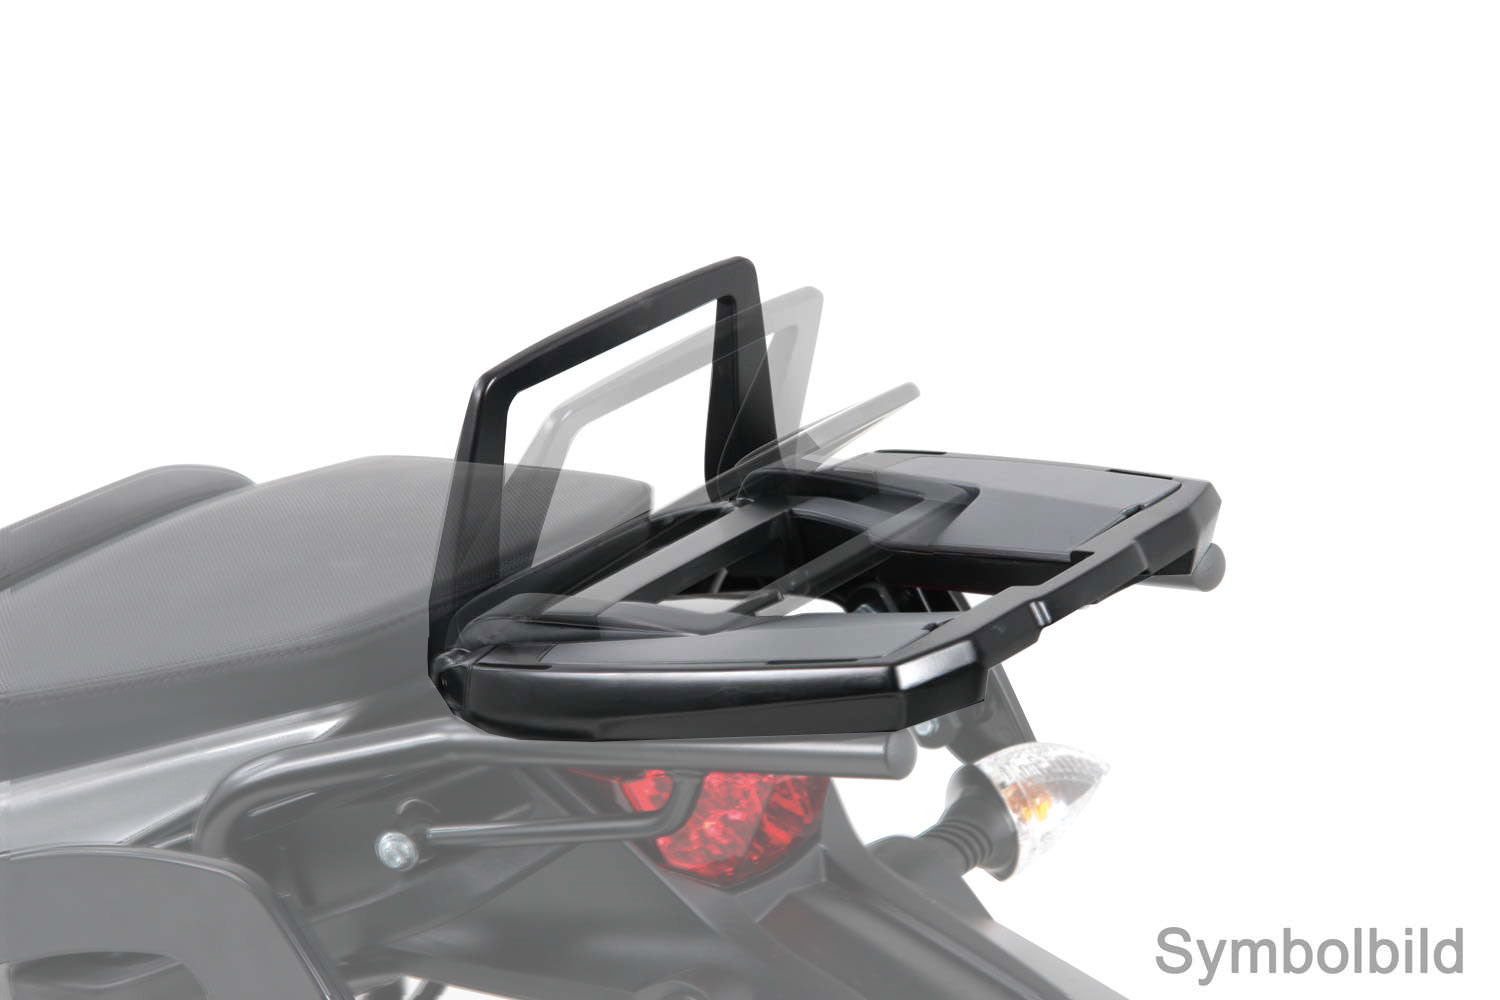 KTM 390 Duke Topcase carrier - Movable Hinge (Easy Rack).